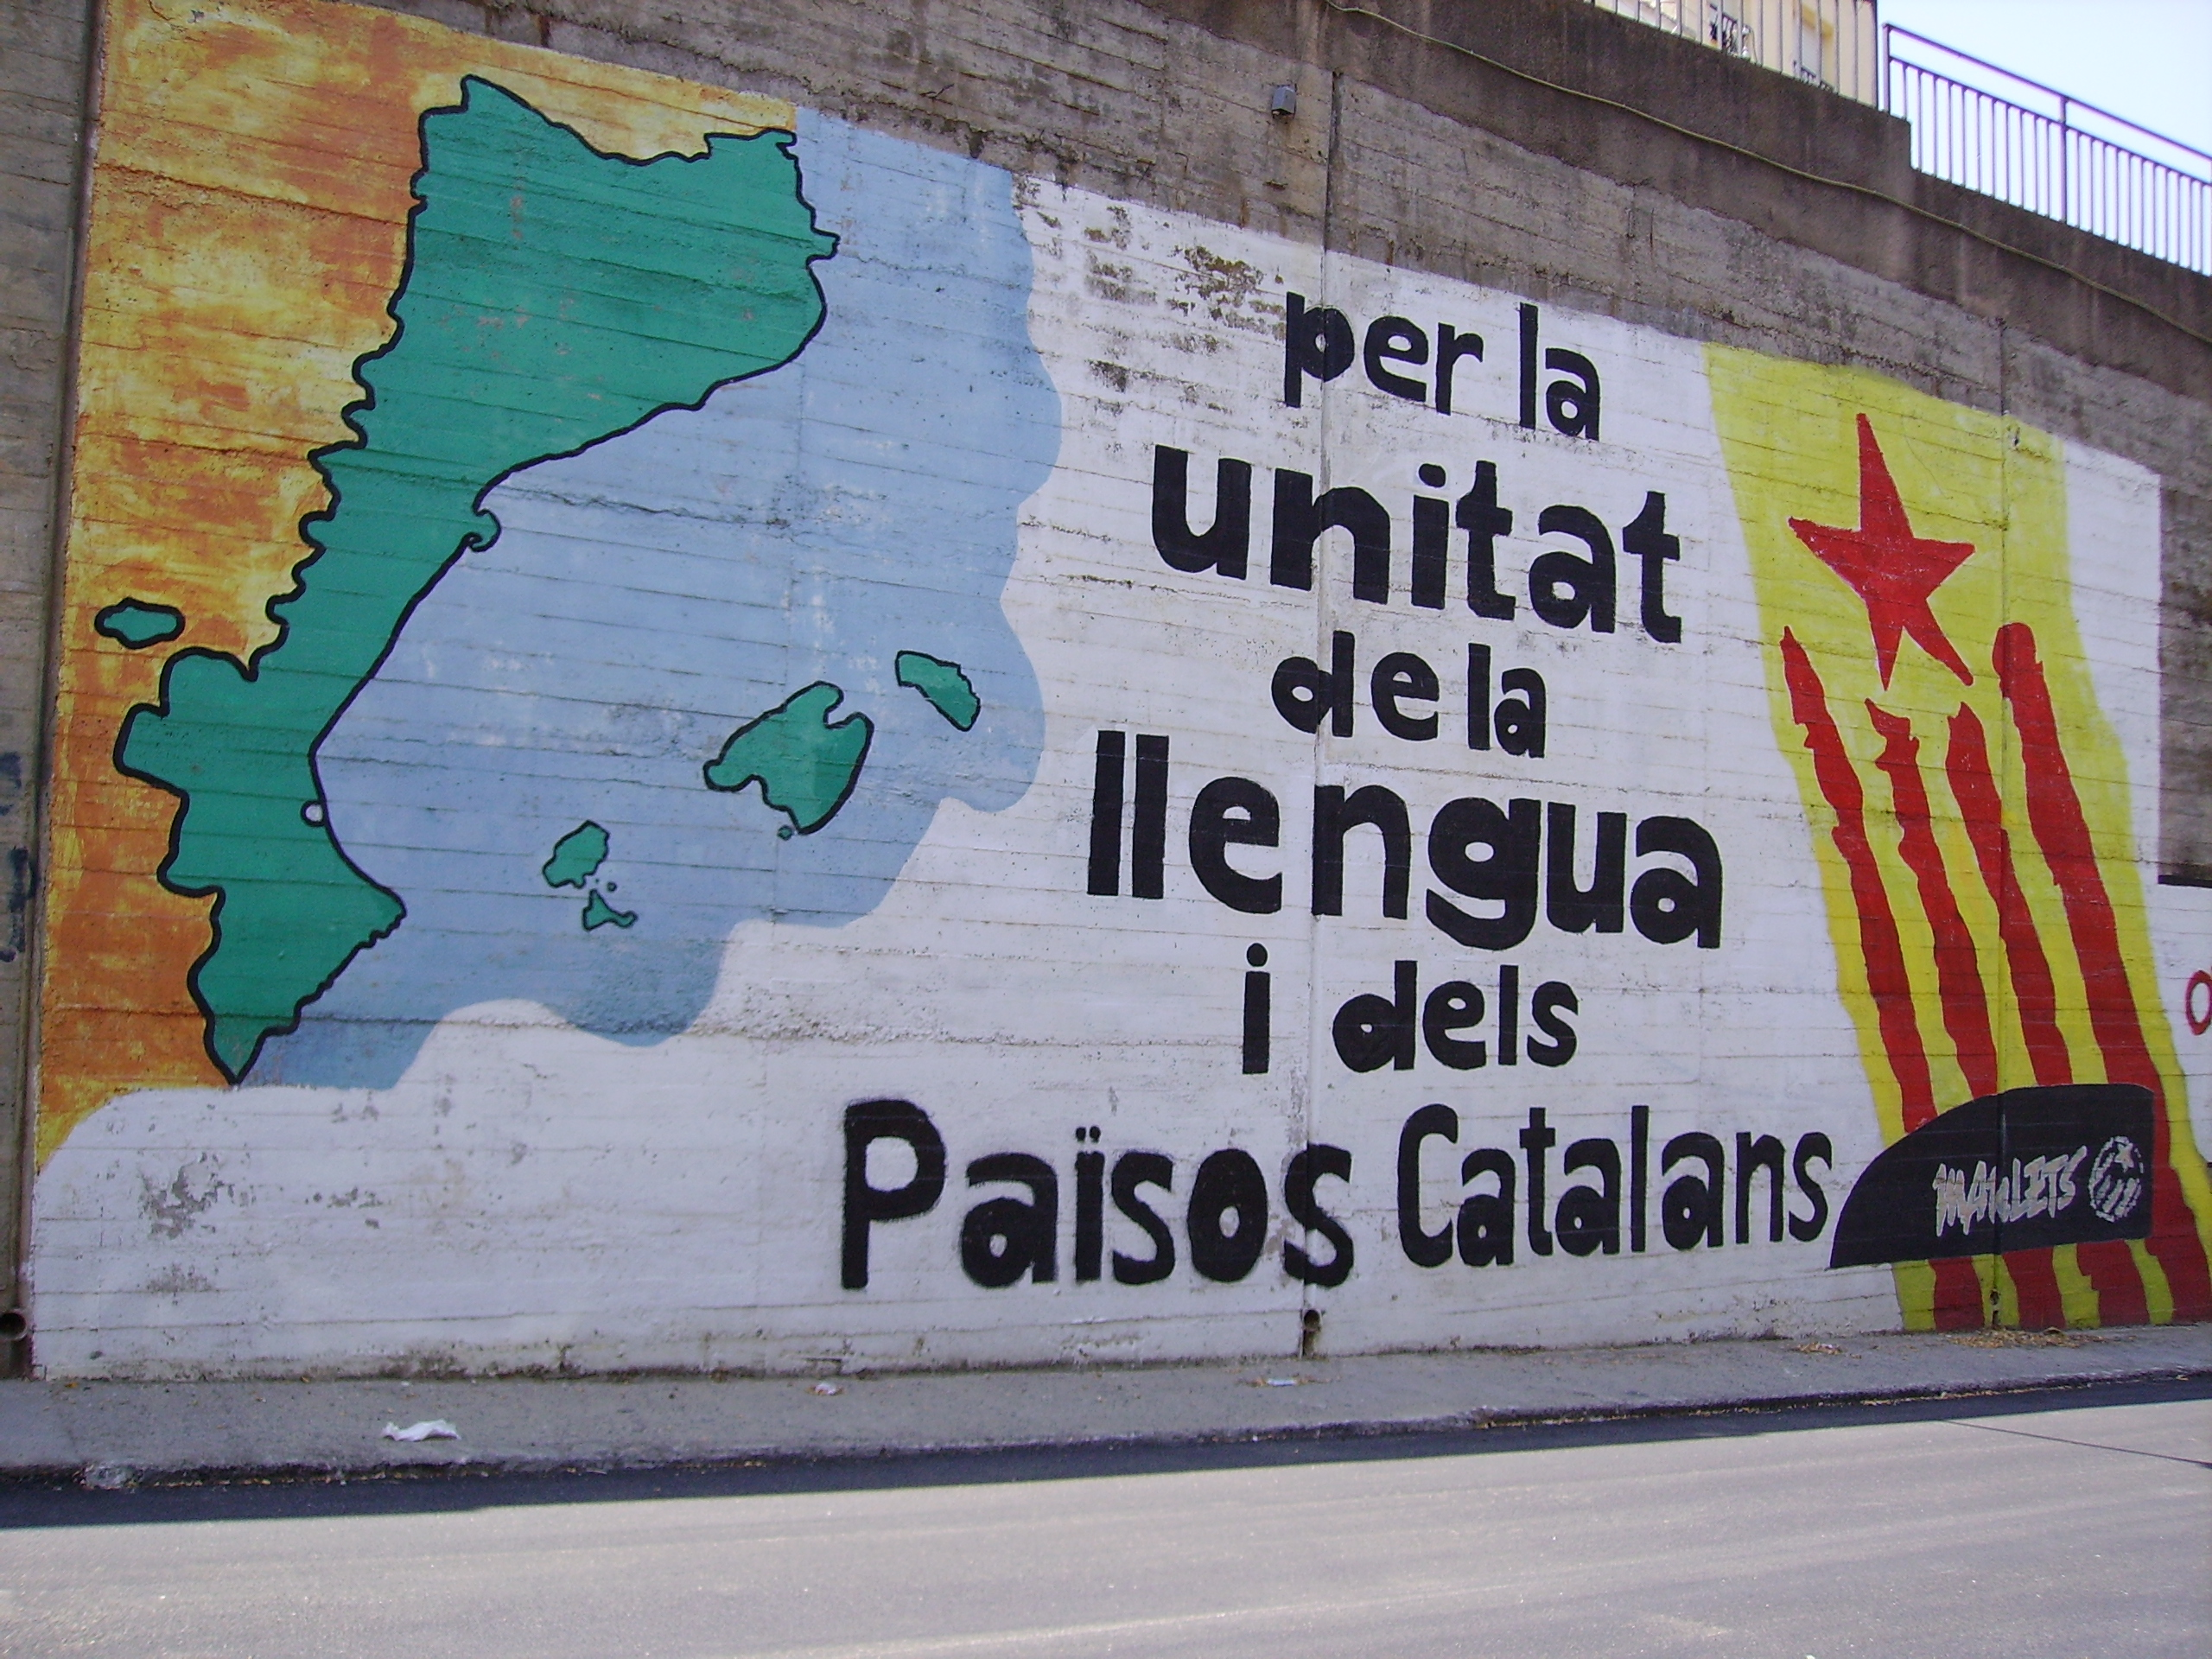 http://upload.wikimedia.org/wikipedia/commons/6/6c/Mural_Països_Catalans.JPG